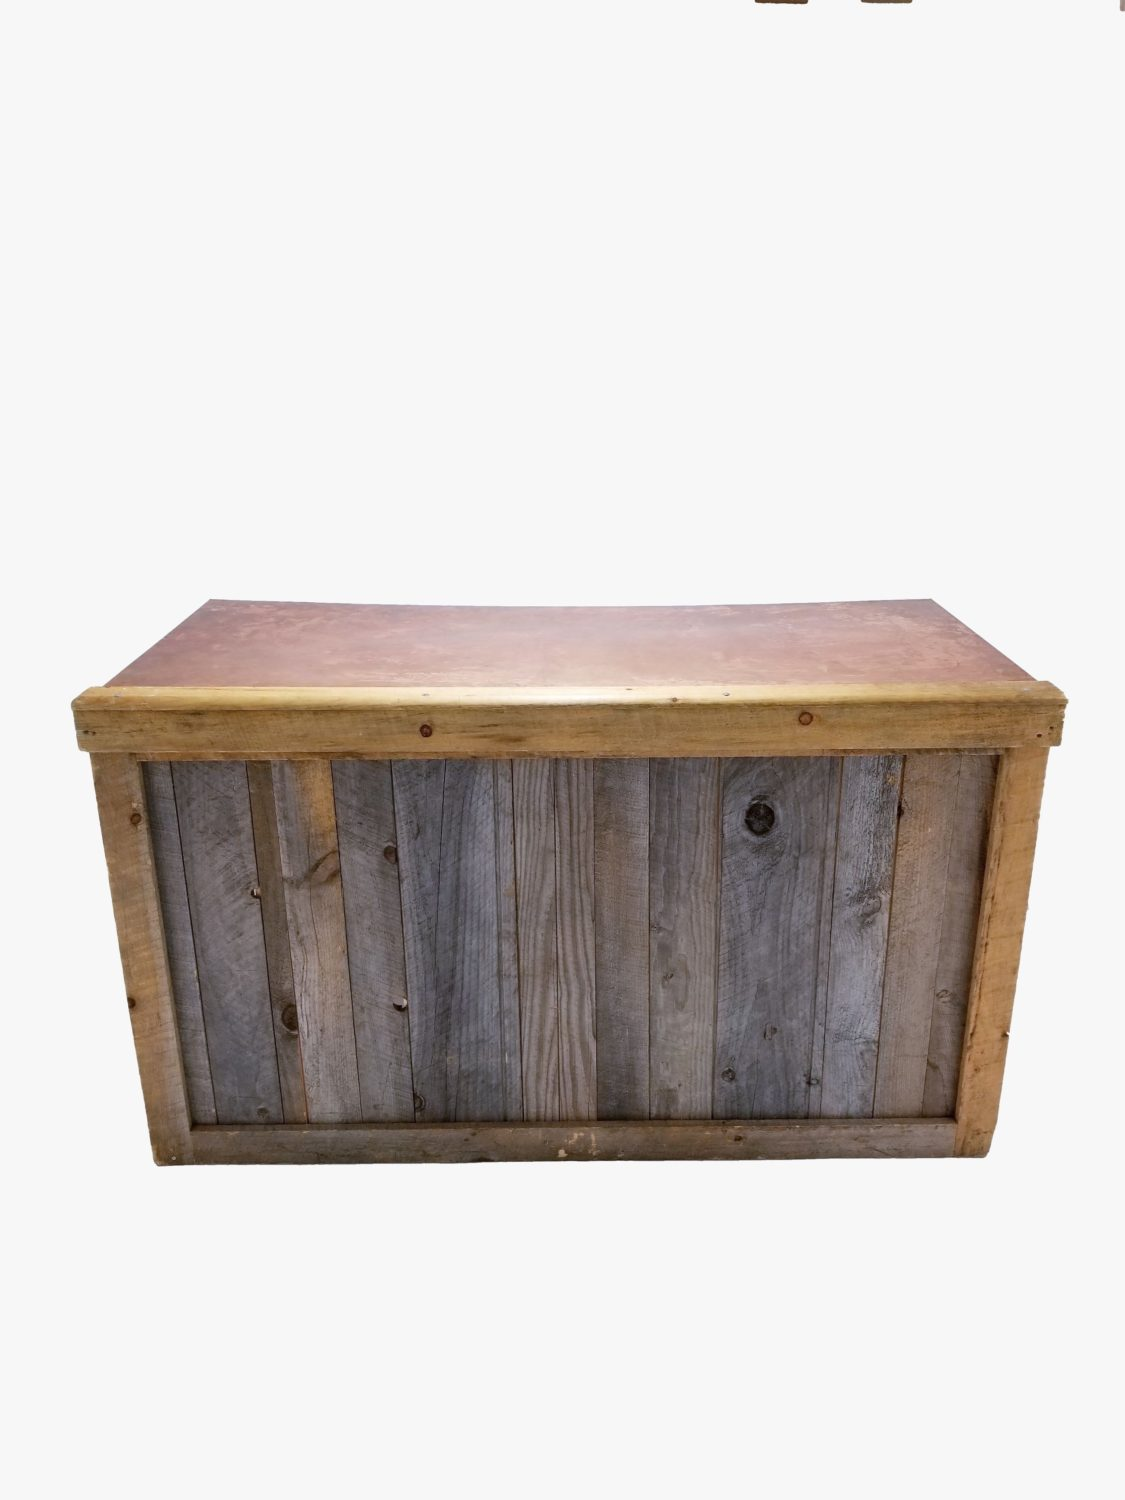 Reclaimed Lumber Copper Top | Rain or Shine Tent Company